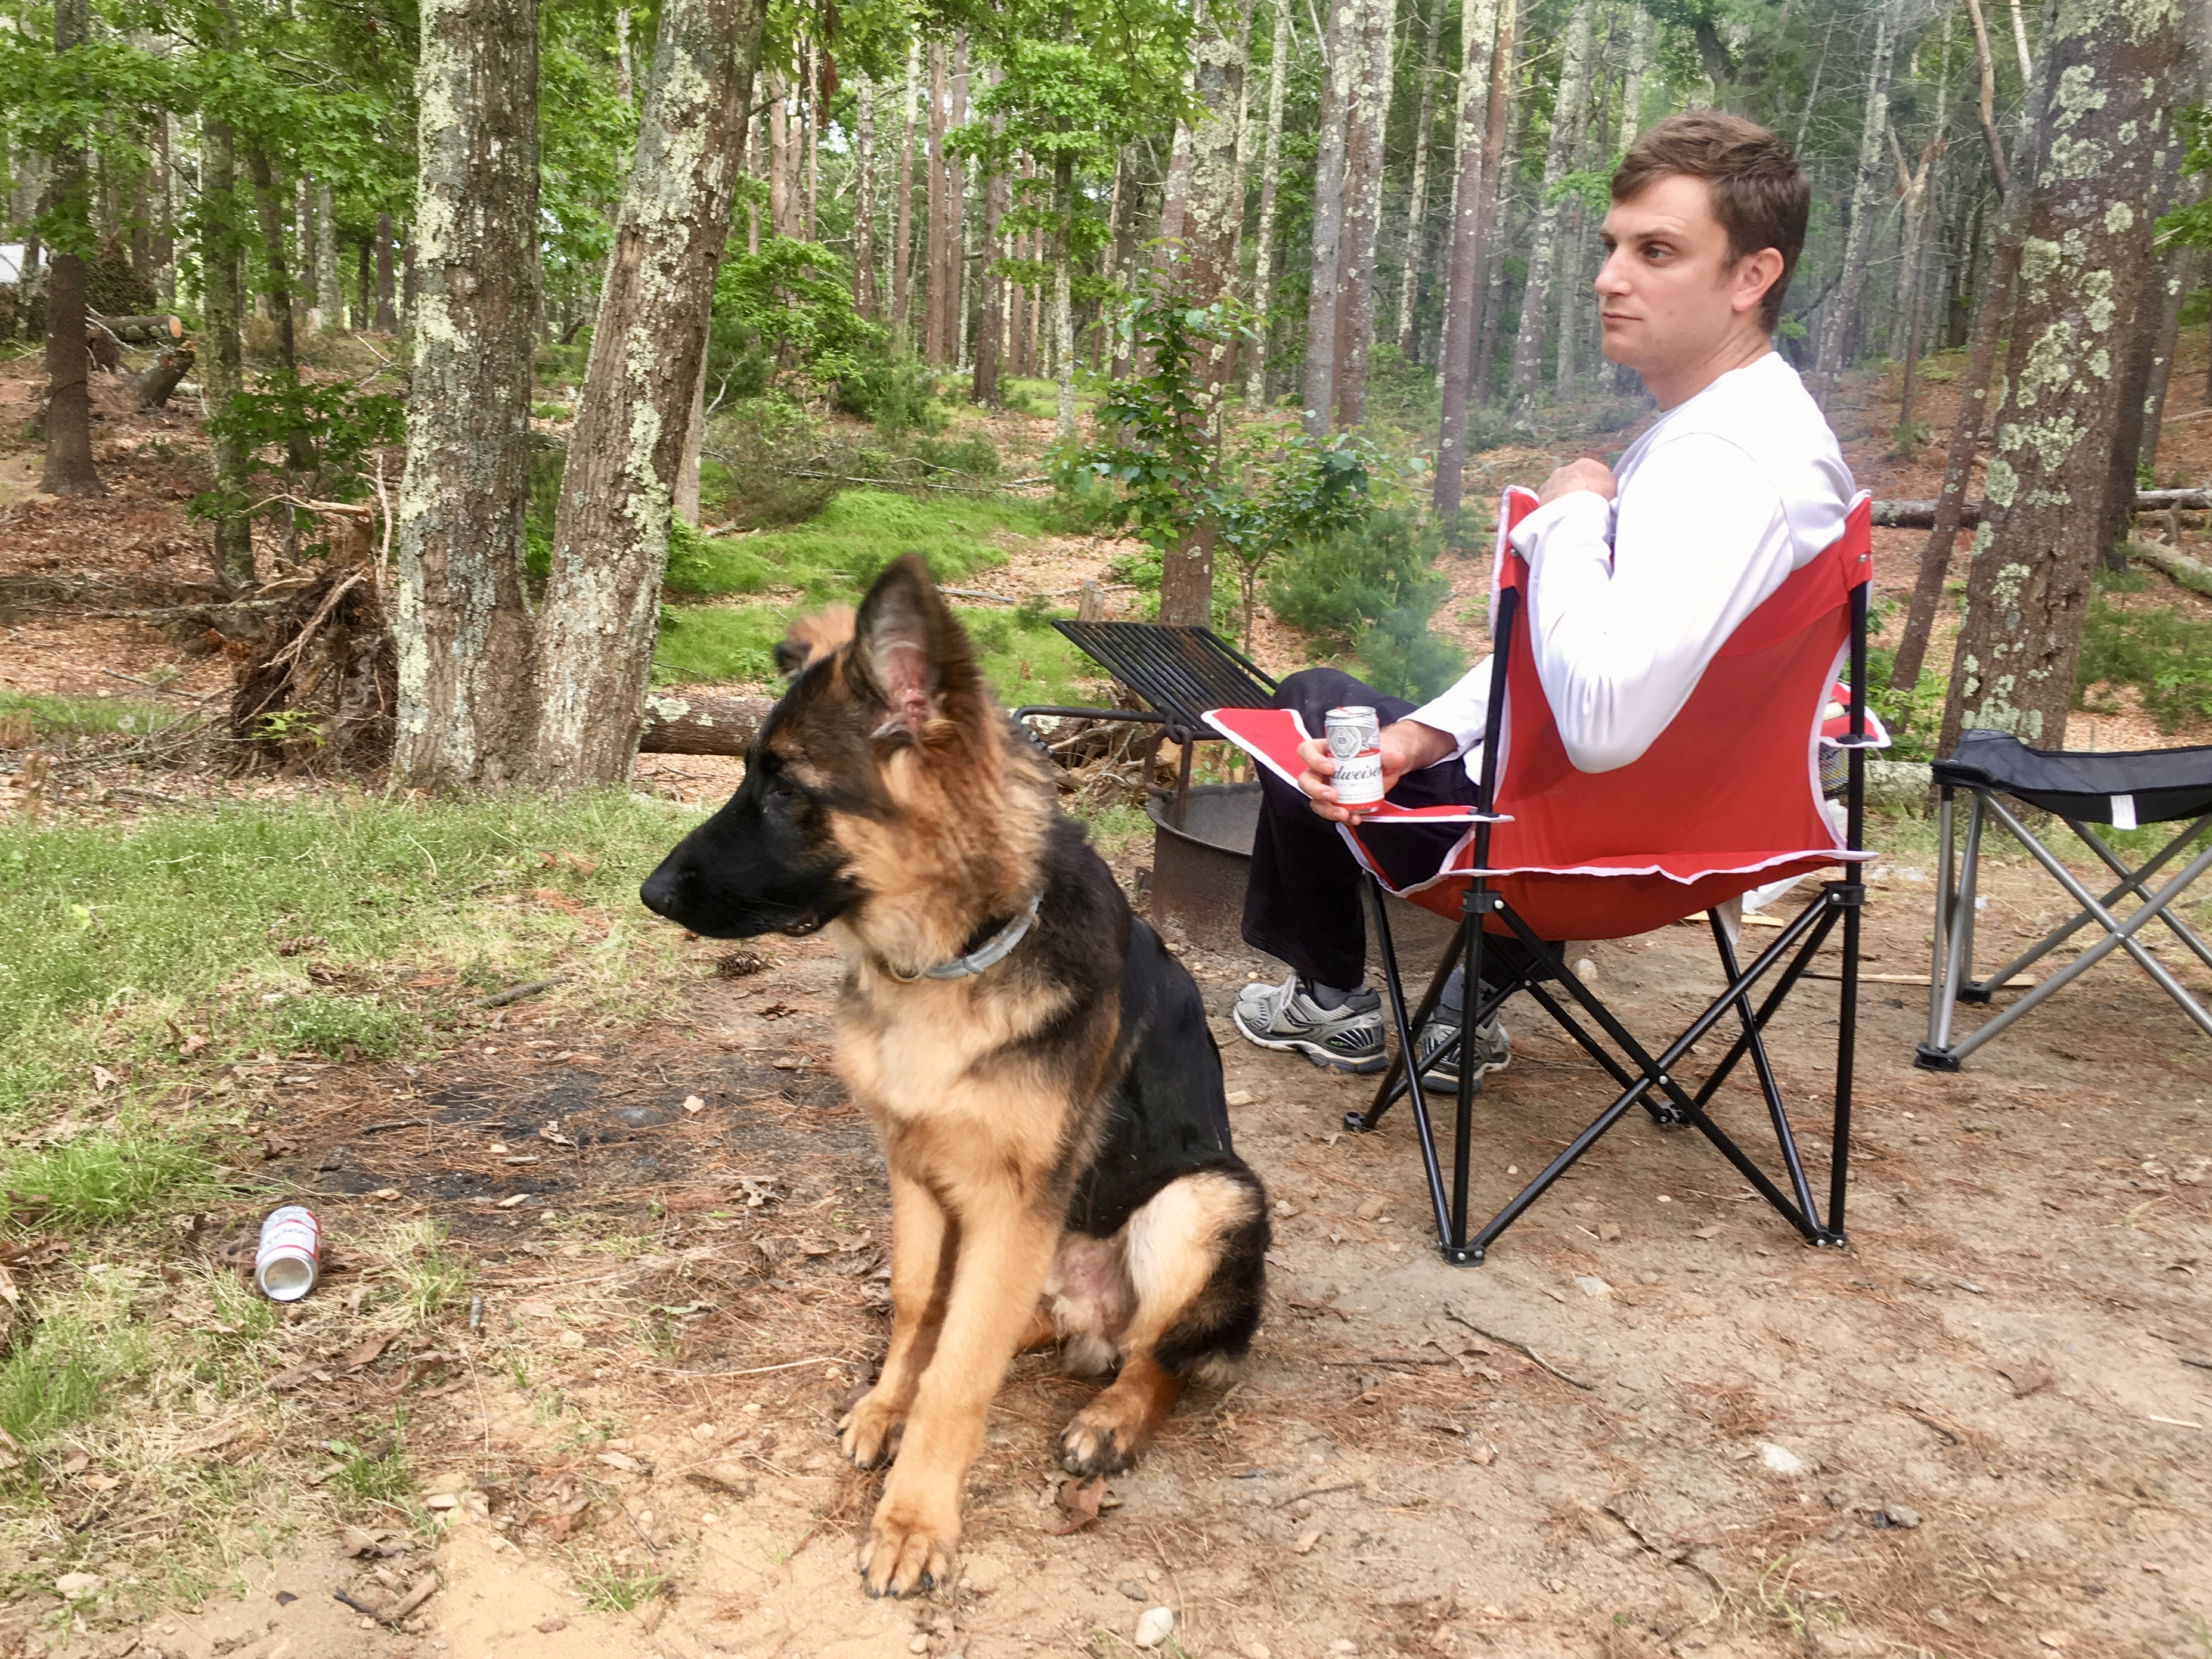 Camping with a dog at Nickerson State Park